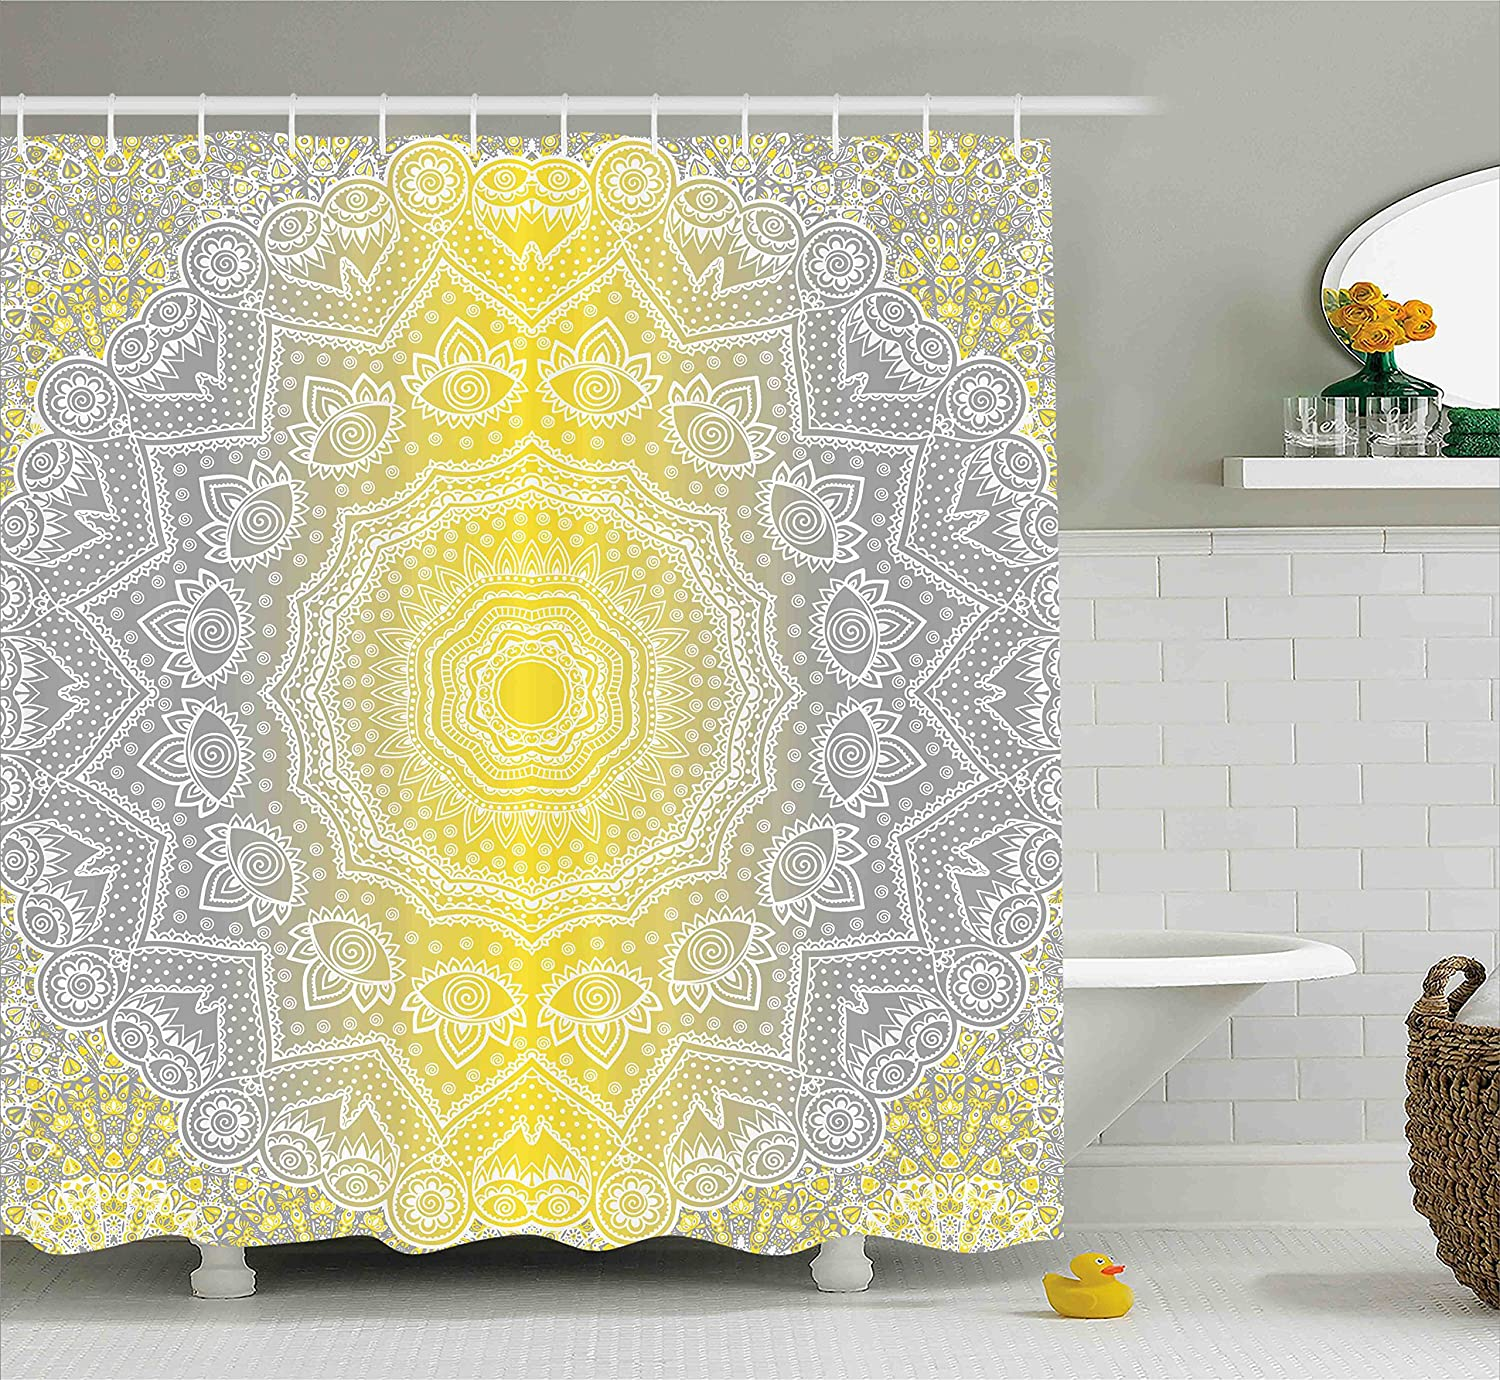 Ambesonne Grey And Yellow Shower Curtain Mandala Ombre Tribal Boho Pattern With Spiral Round Ancient Floral Print Fabric Bathroom Decor Set Hooks